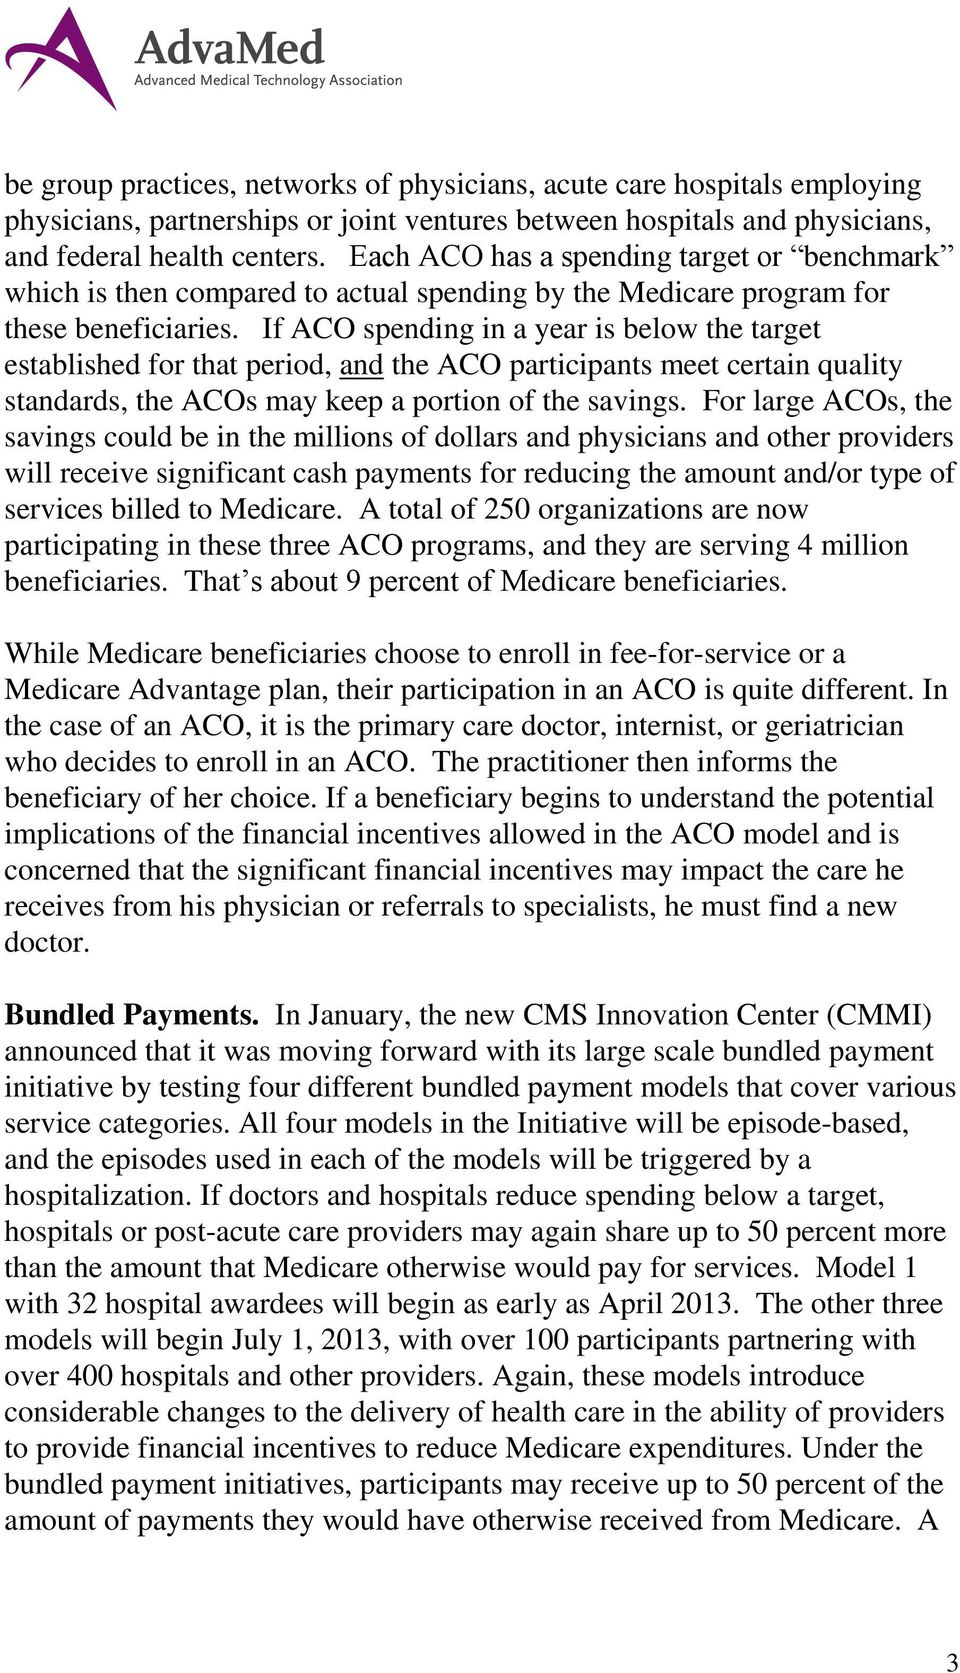 If ACO spending in a year is below the target established for that period, and the ACO participants meet certain quality standards, the ACOs may keep a portion of the savings.